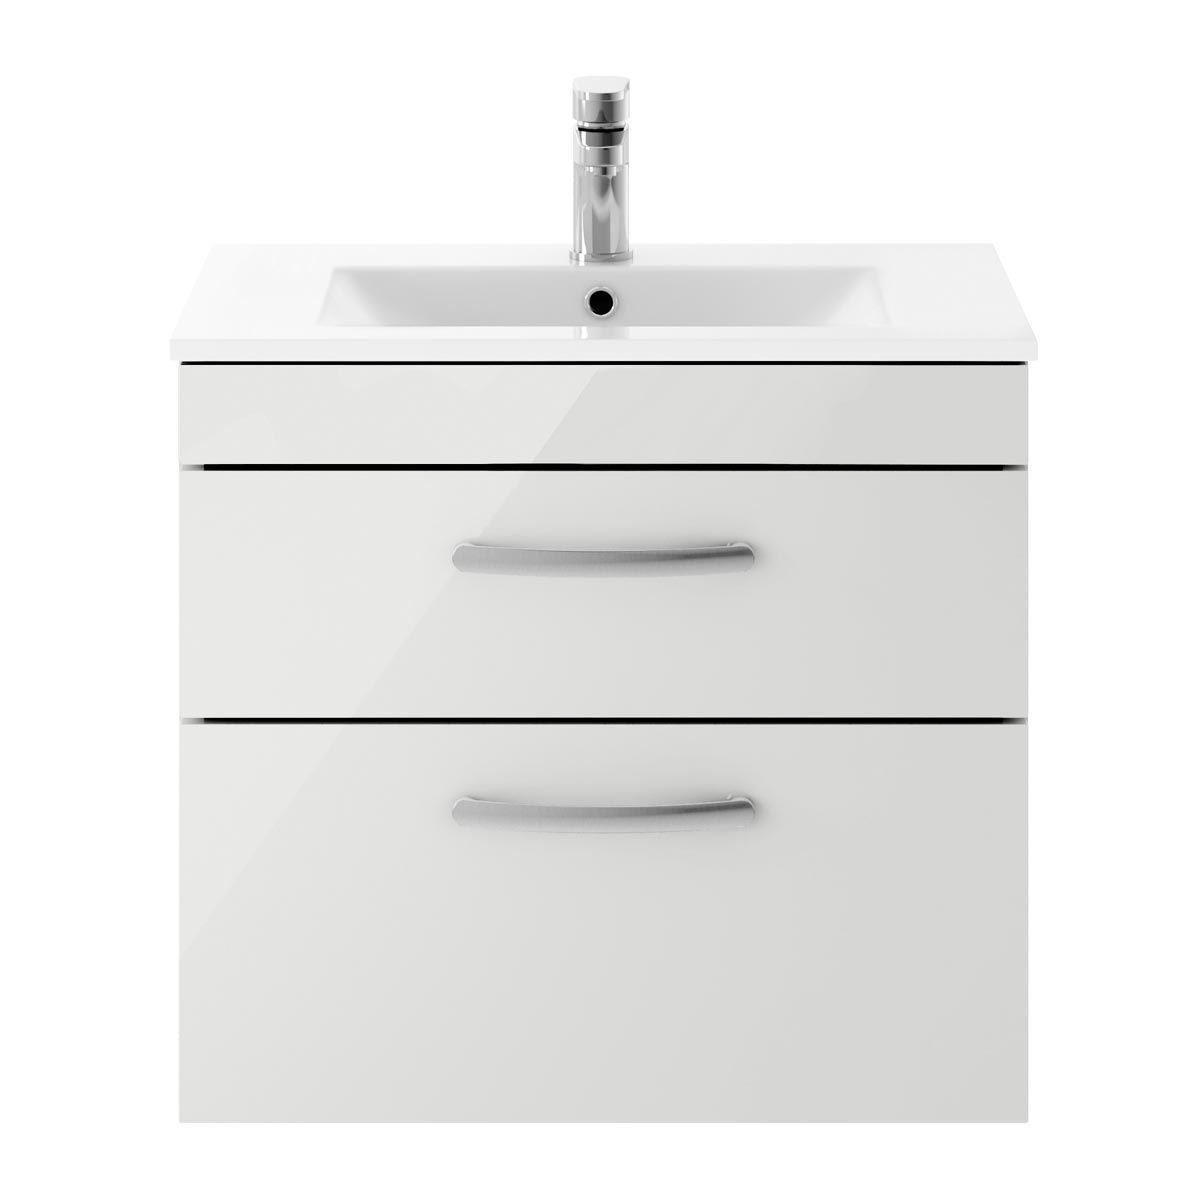 Nuie Athena Gloss Grey Mist 2 Drawer Wall Hung Vanity Unit with 18mm Profile Basin 600mm